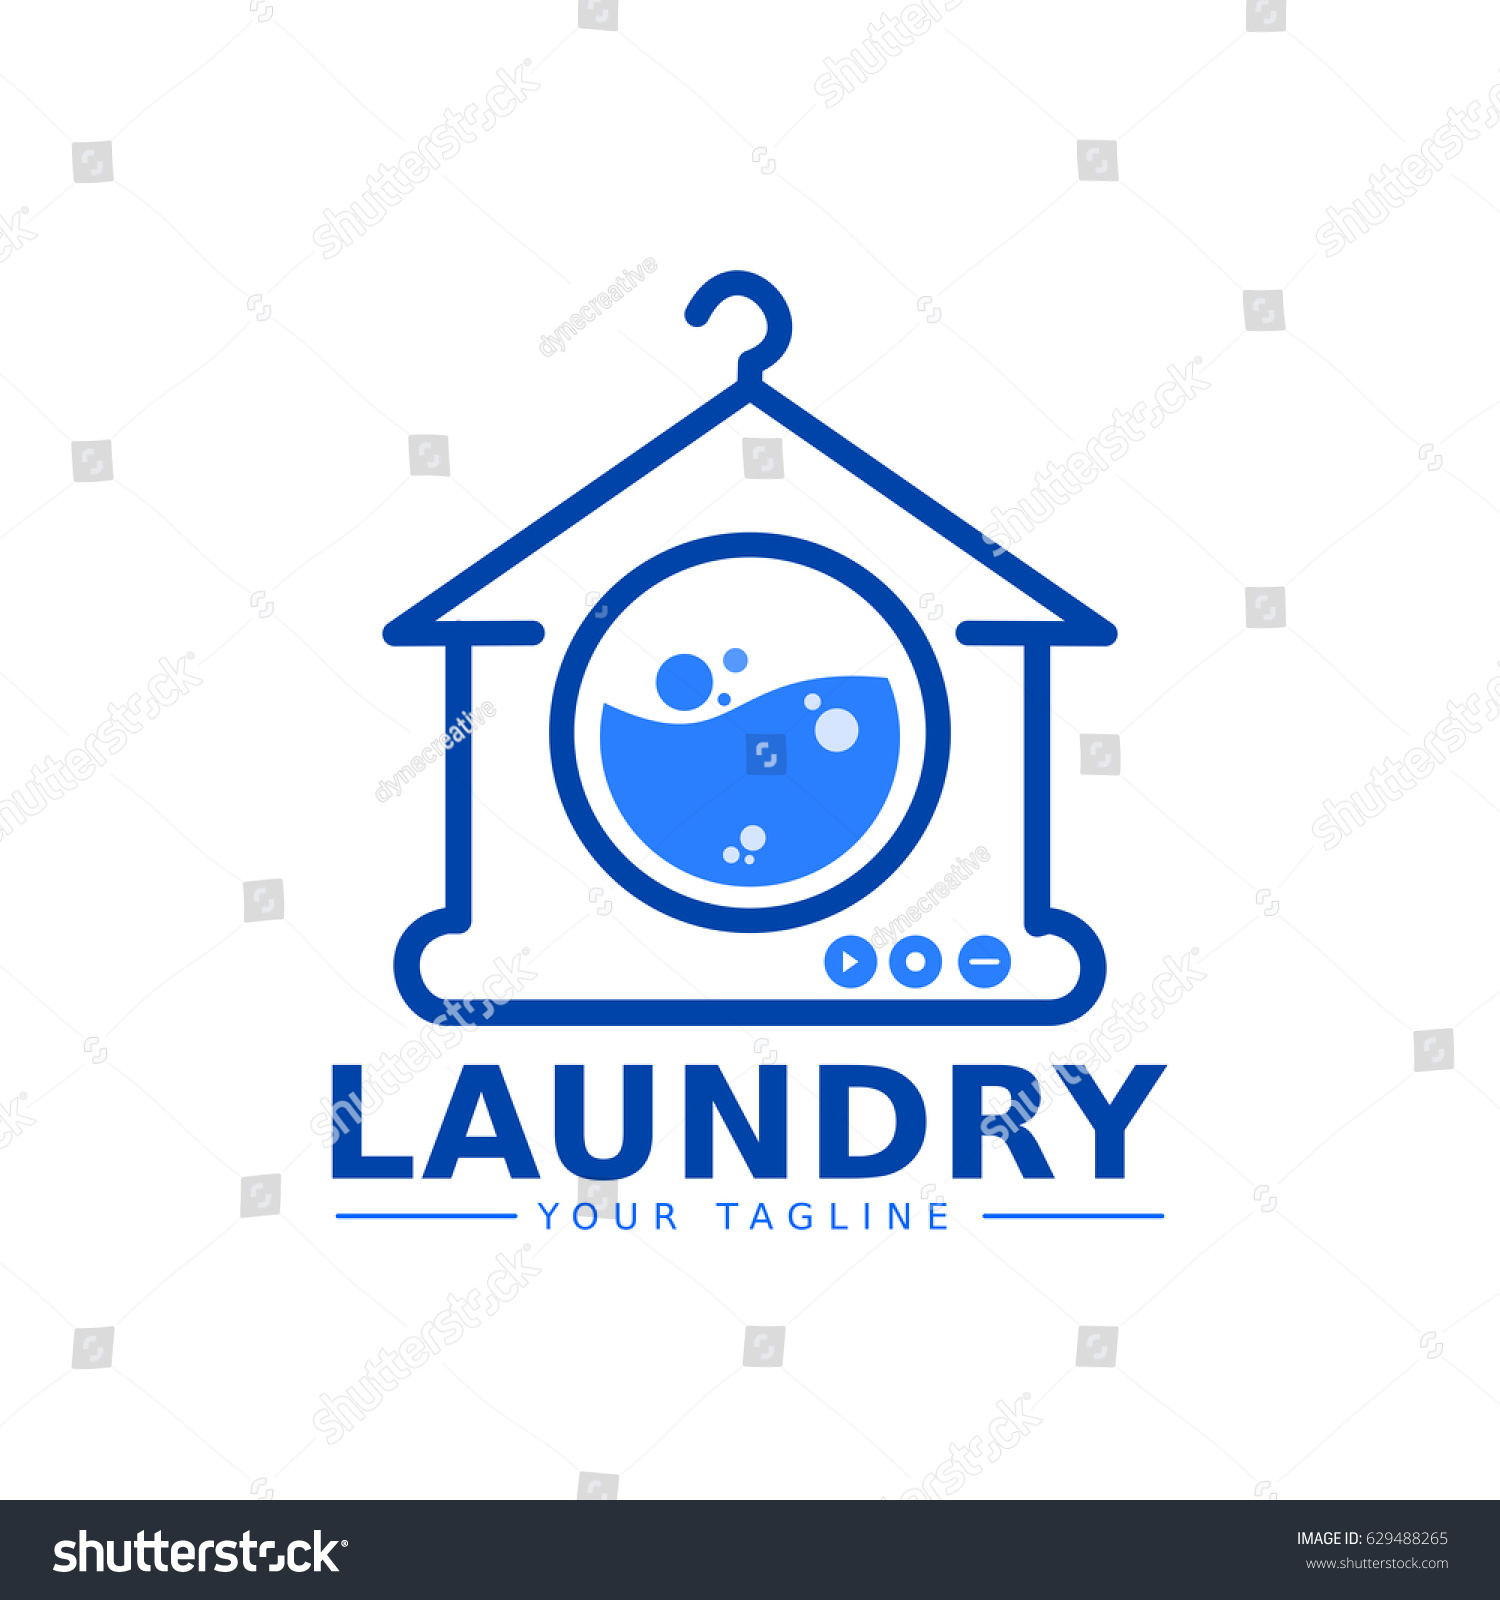 laundry logo icon design stock illustration 629488265 https www shutterstock com image illustration laundry logo icon design 629488265